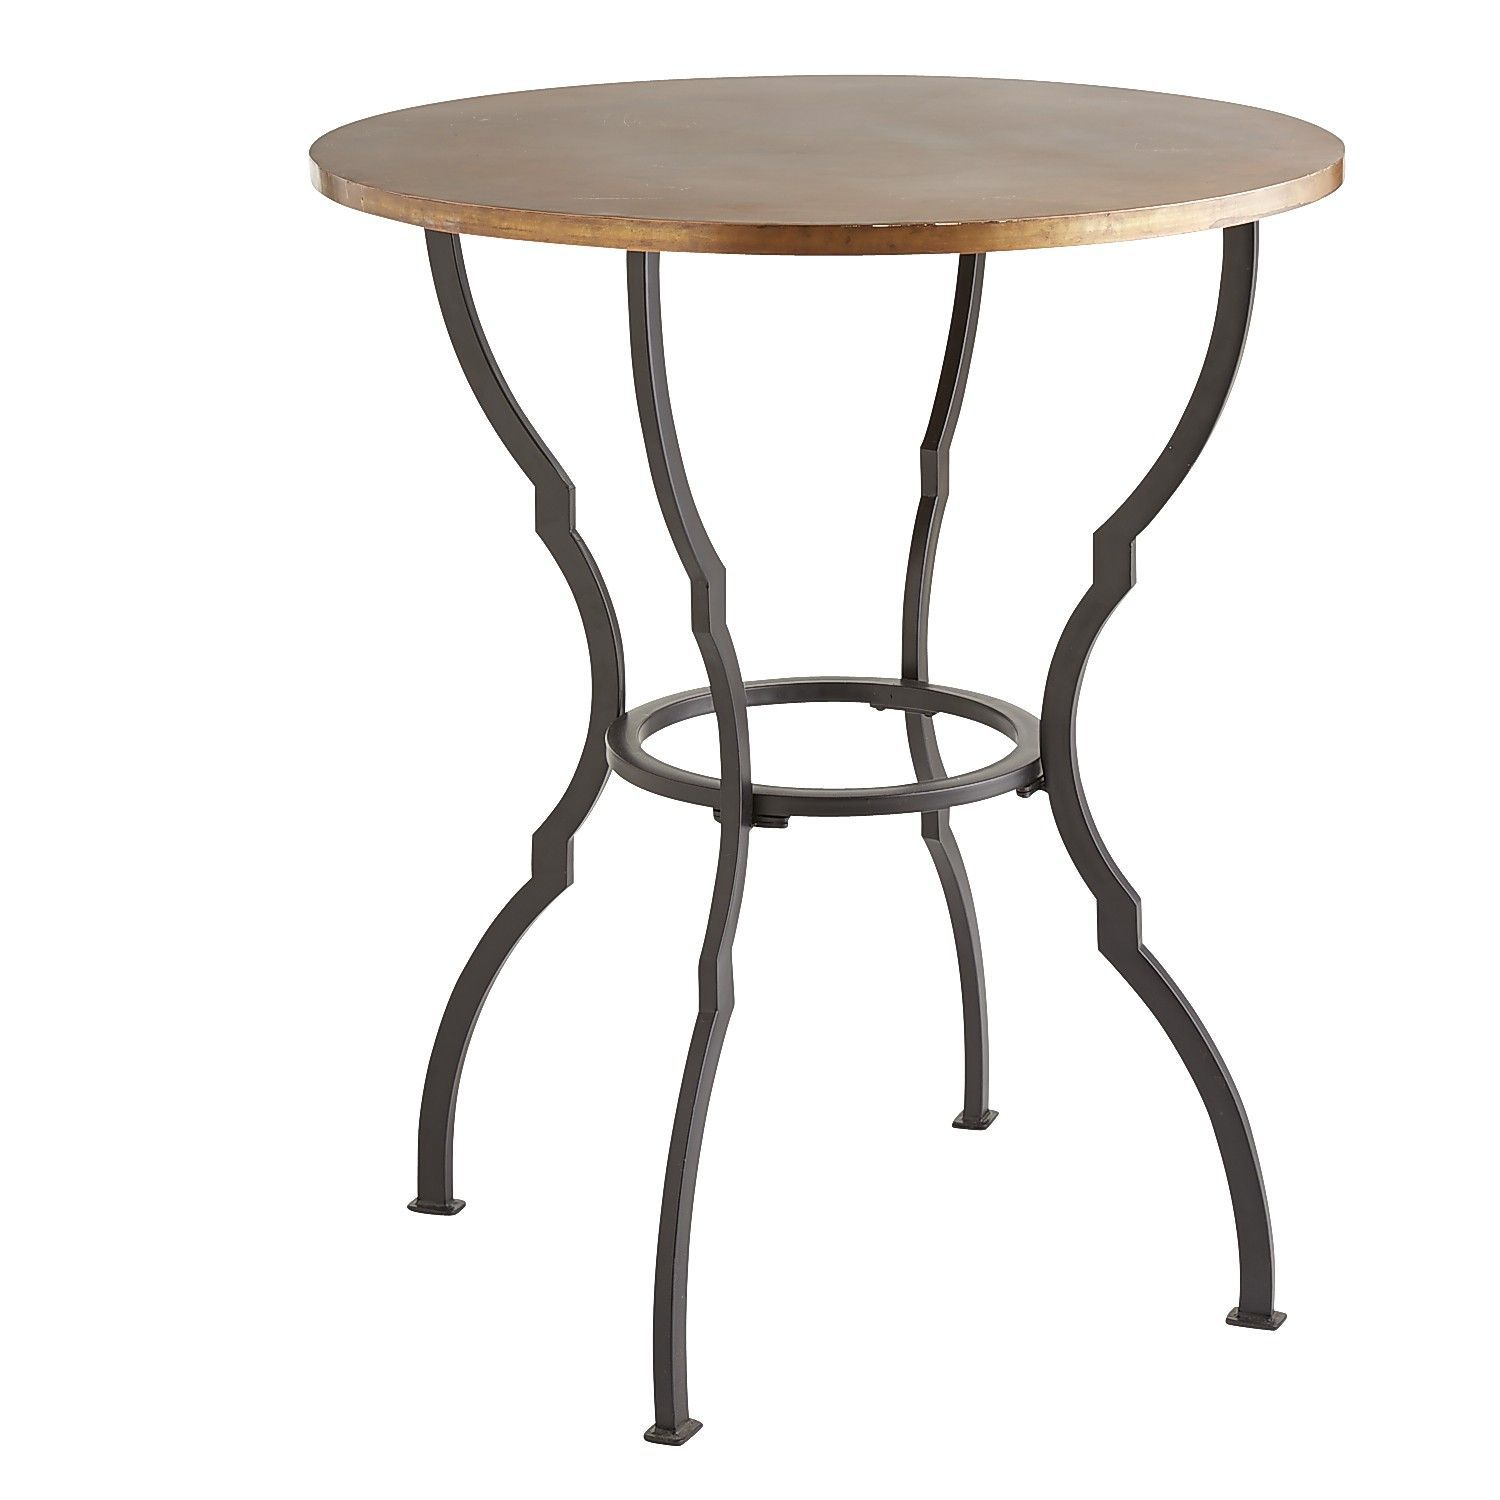 Outdoor Patio Furniture Under 200: $200 - Colton Bar Table